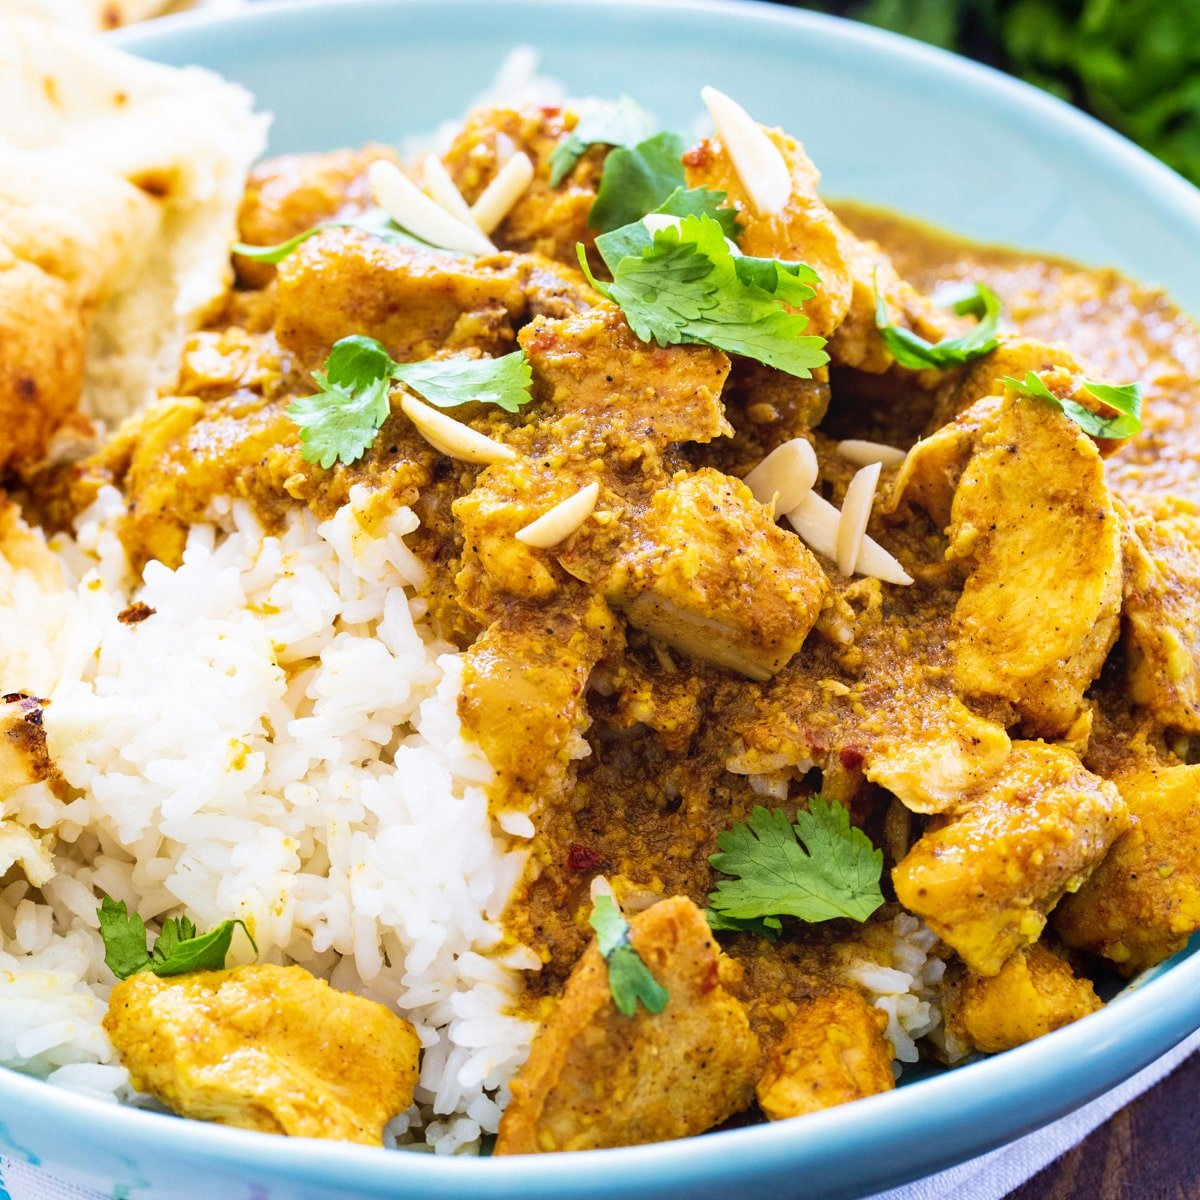 Slow Cooker Chicken Korma over rice in a blue bowl.